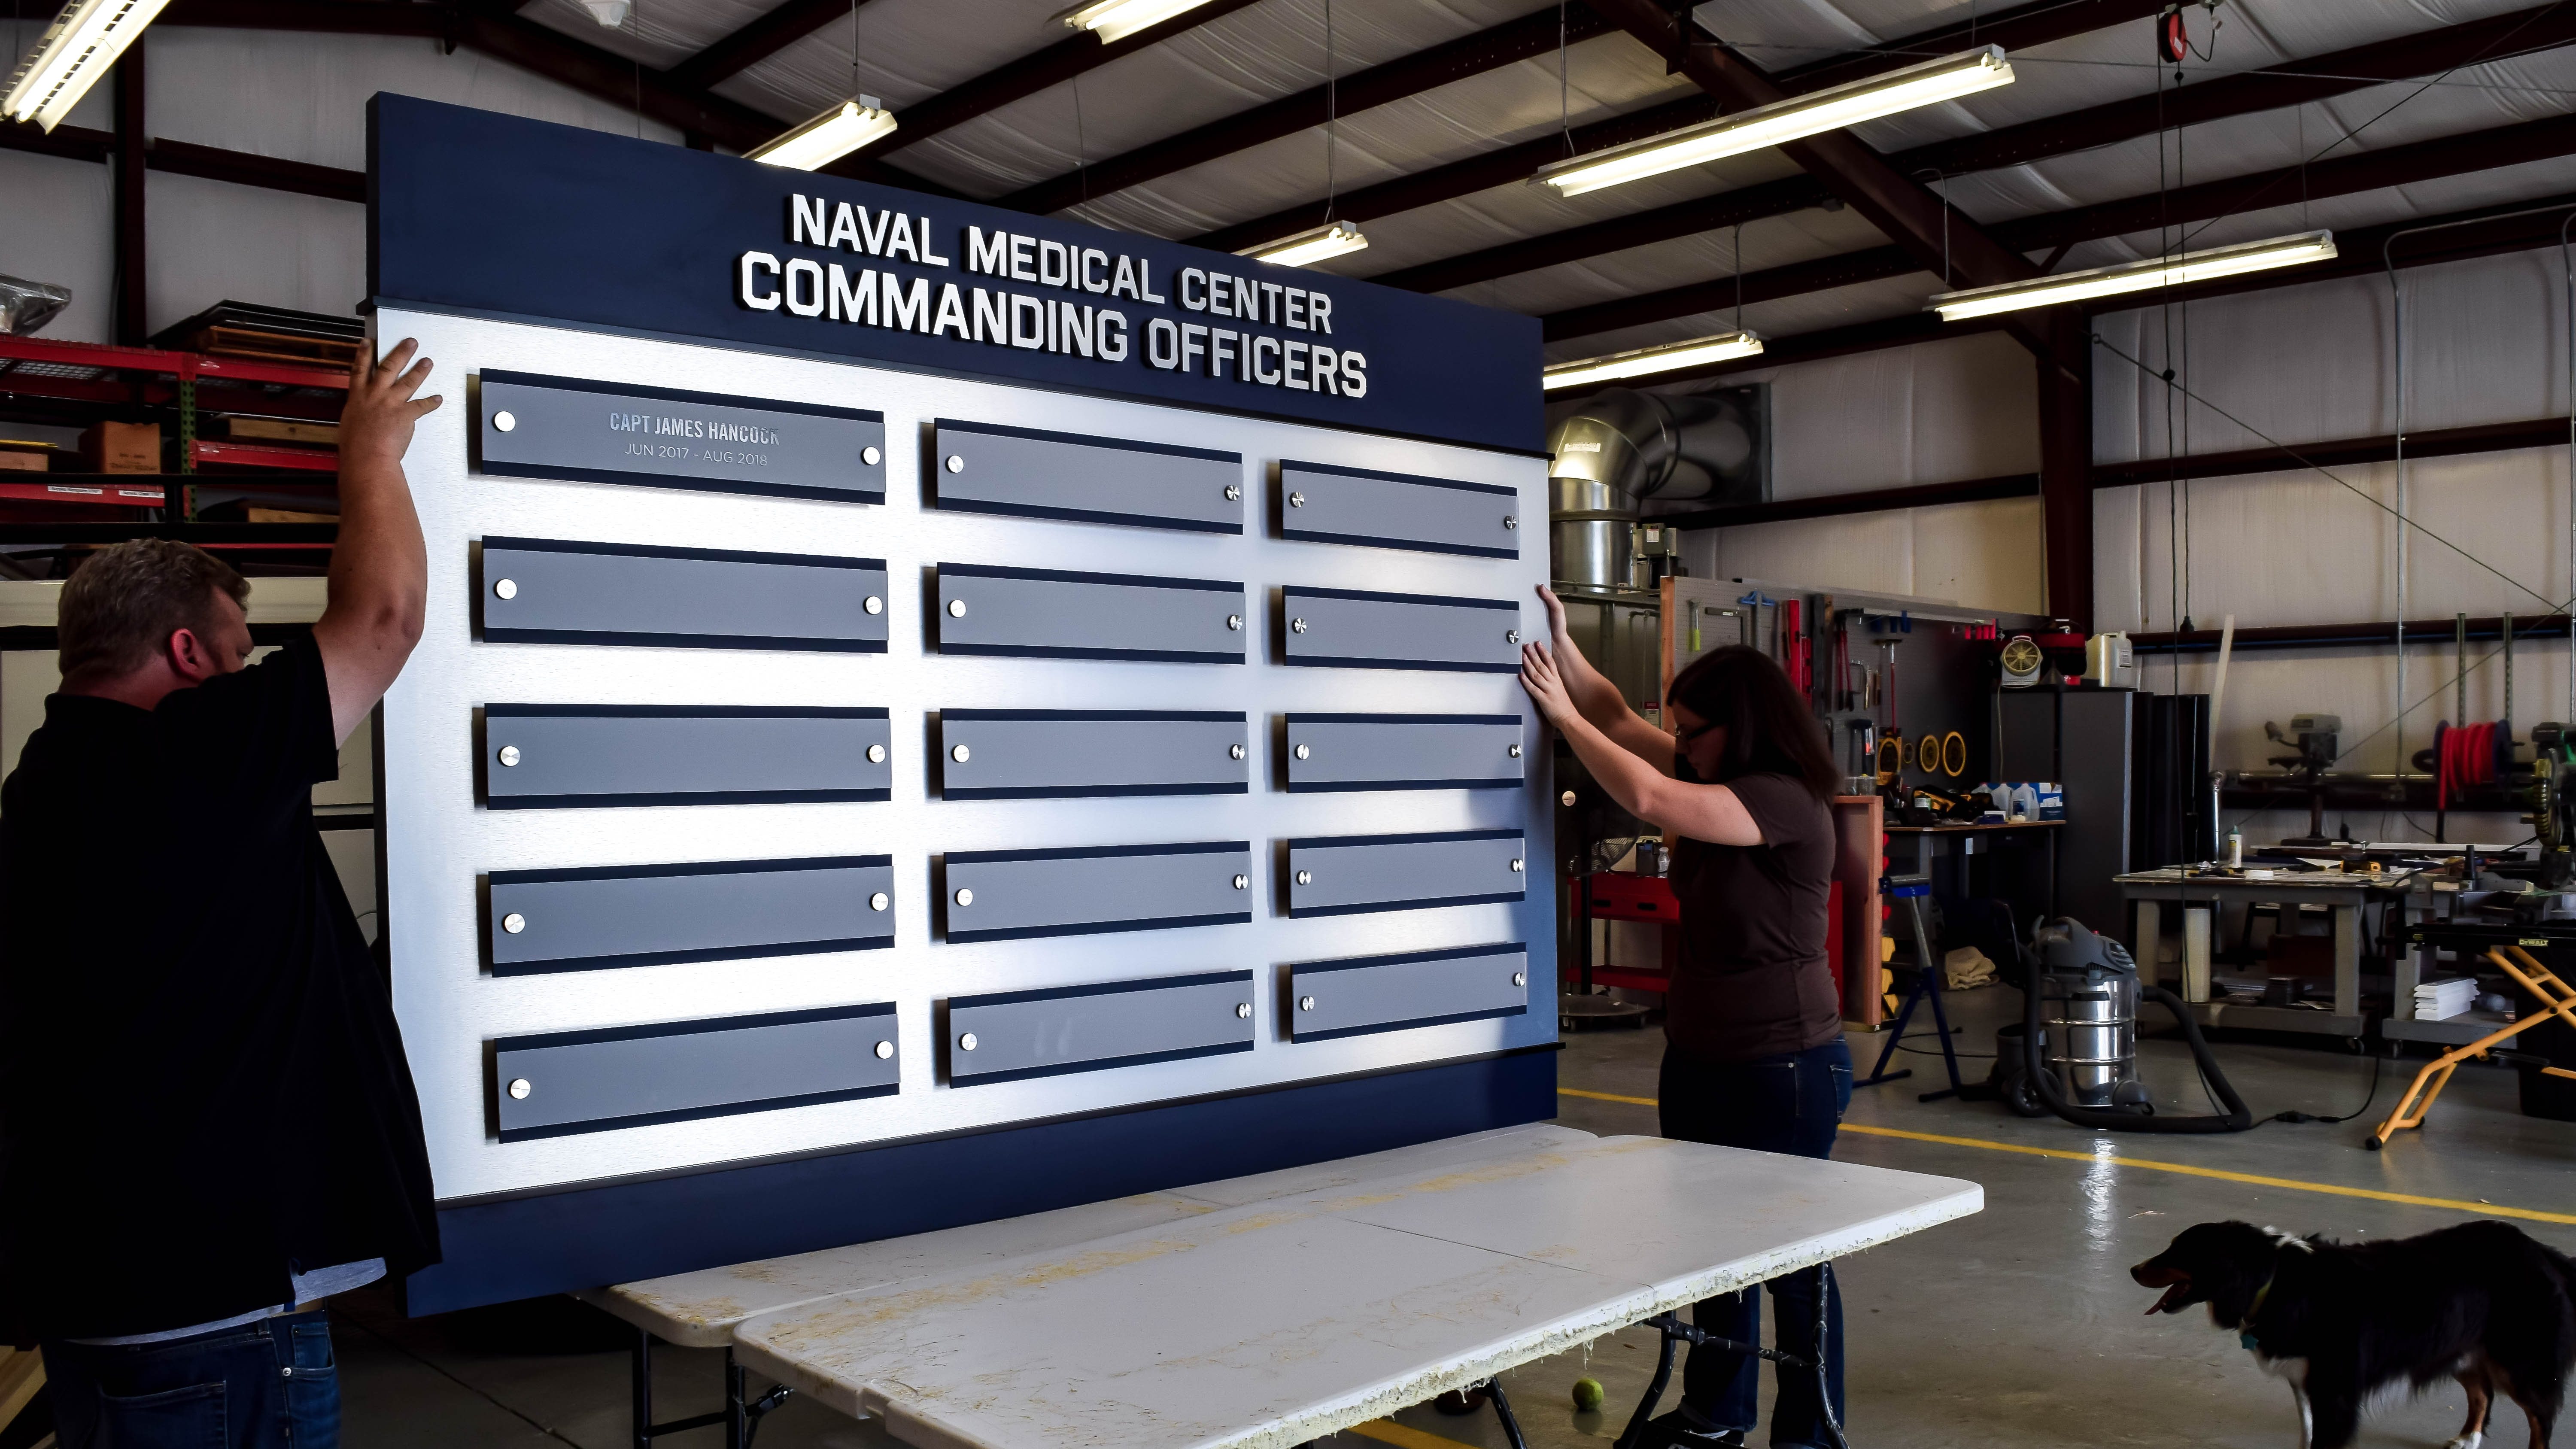 Custom recognition display for Navy Officers by signgeek